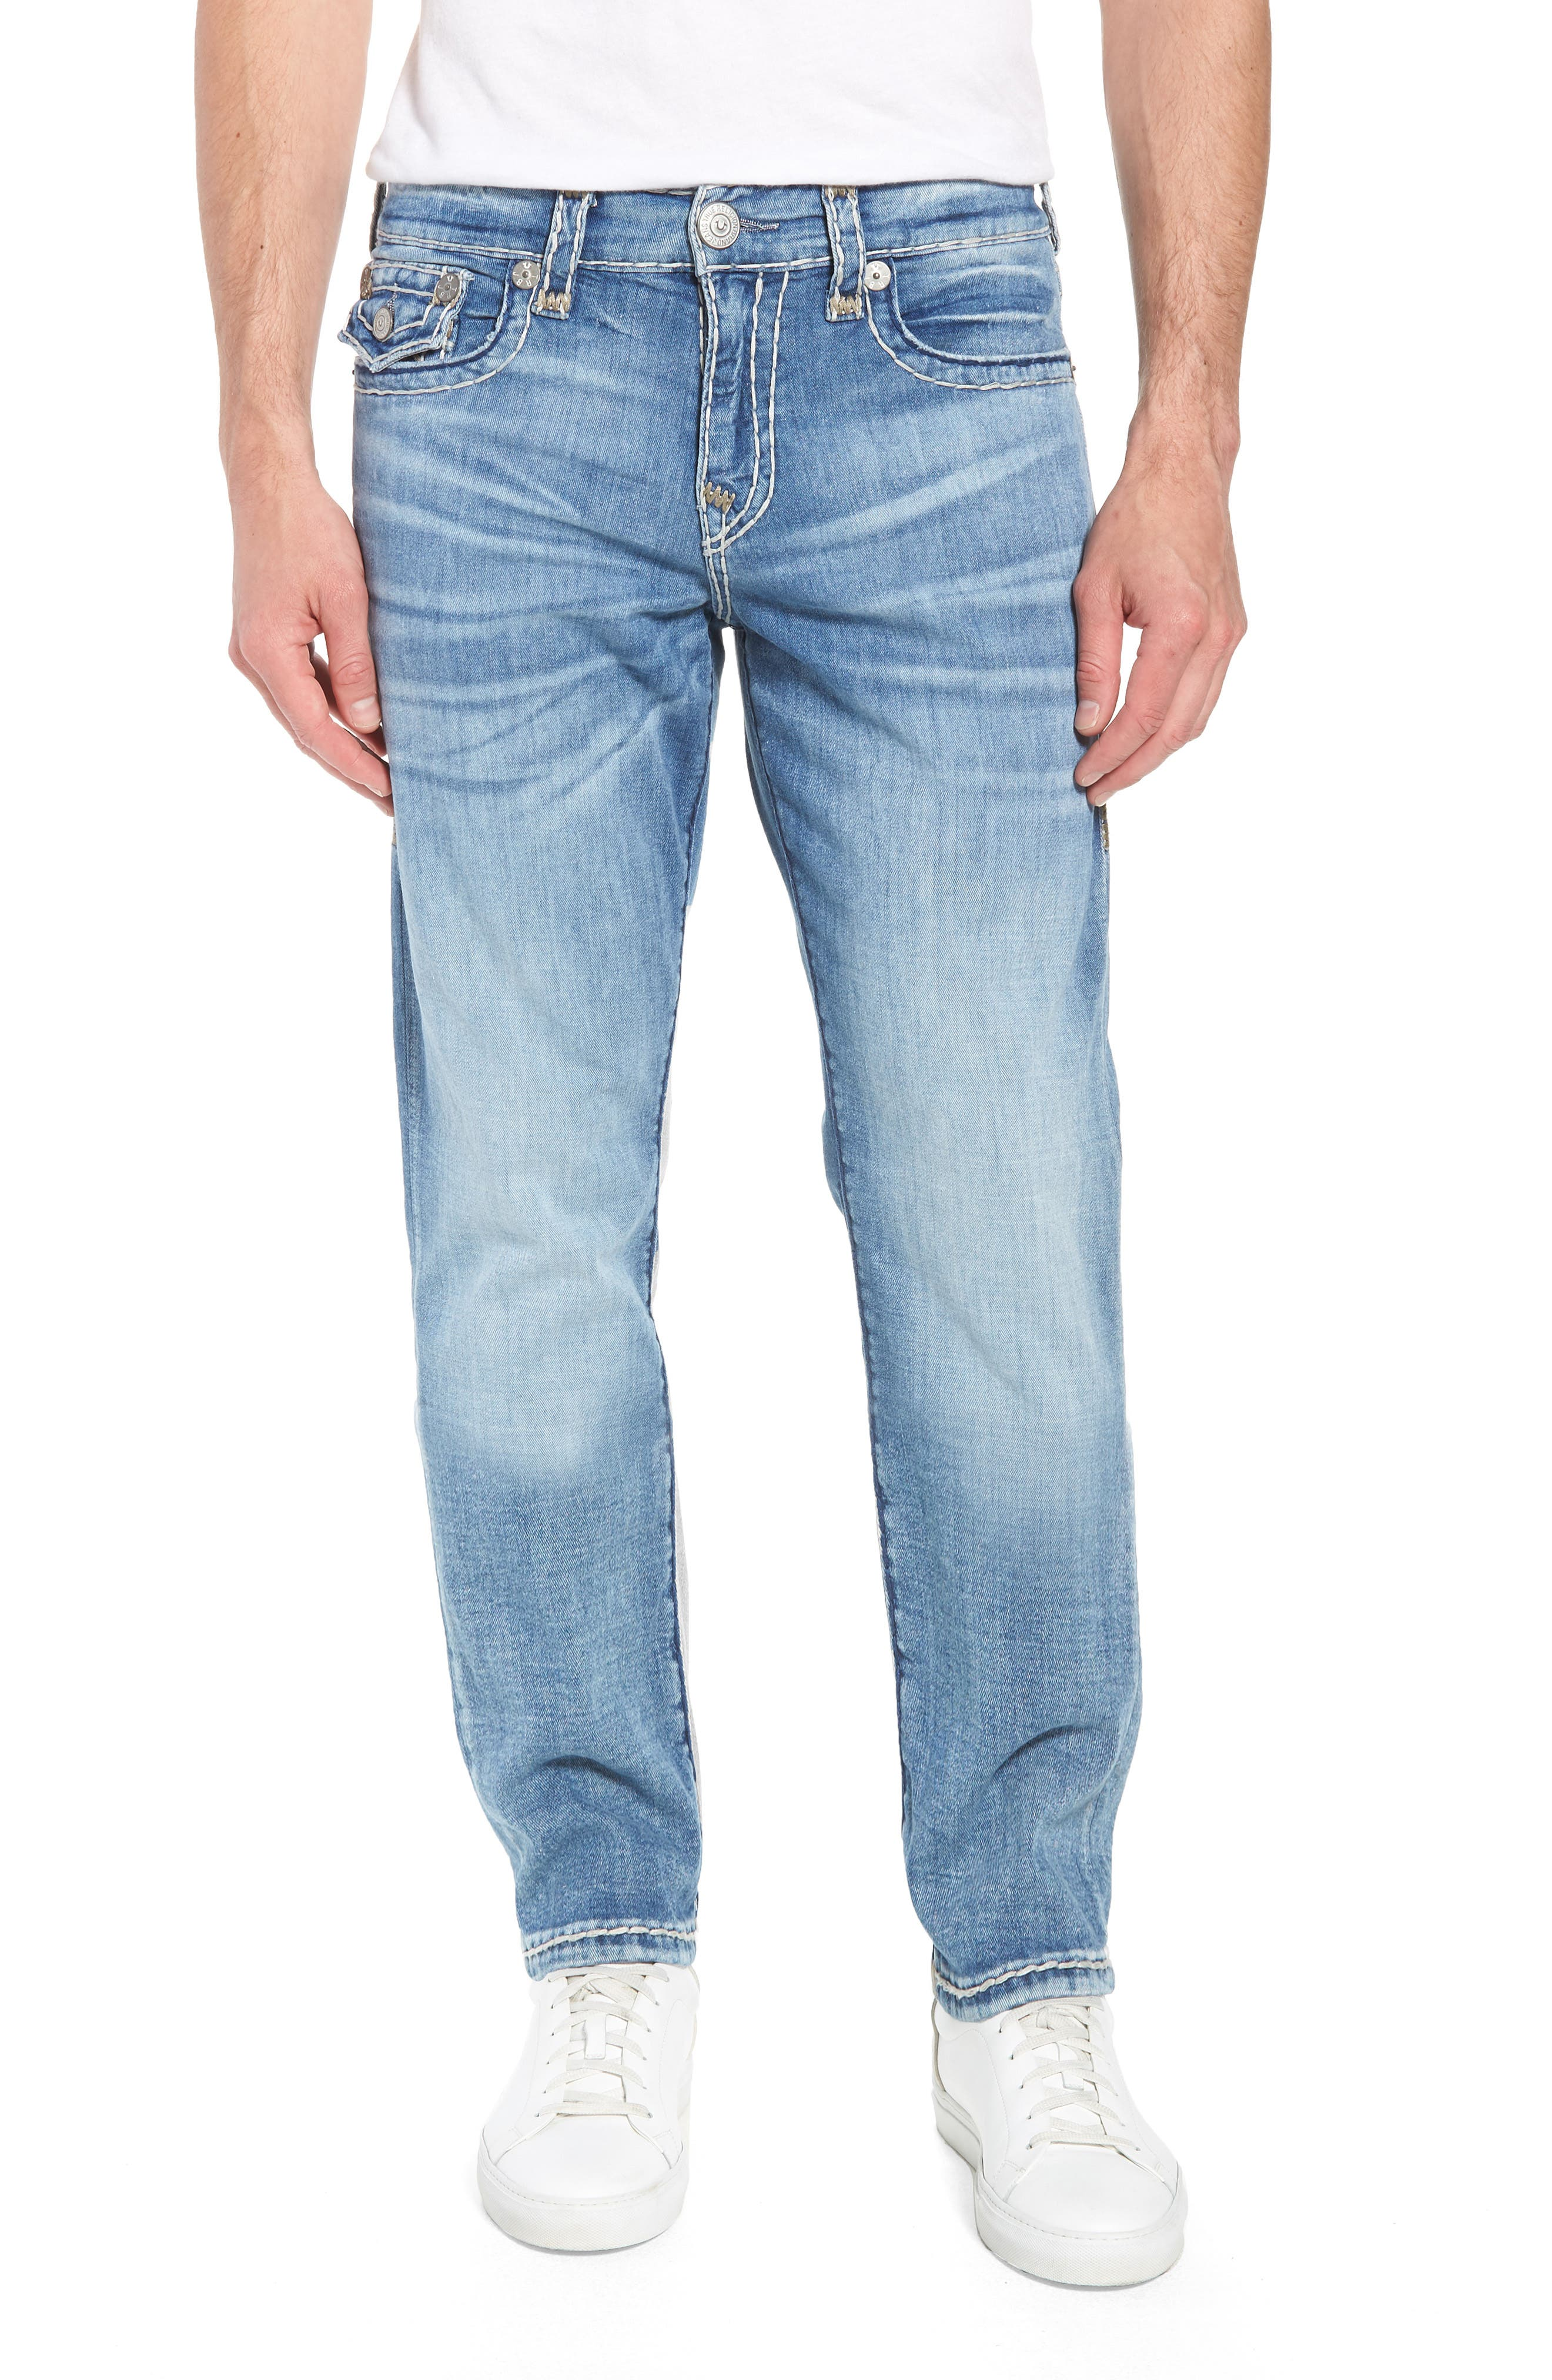 True Religion Brand Jeans Geno Straight Leg Jeans (Satellite)